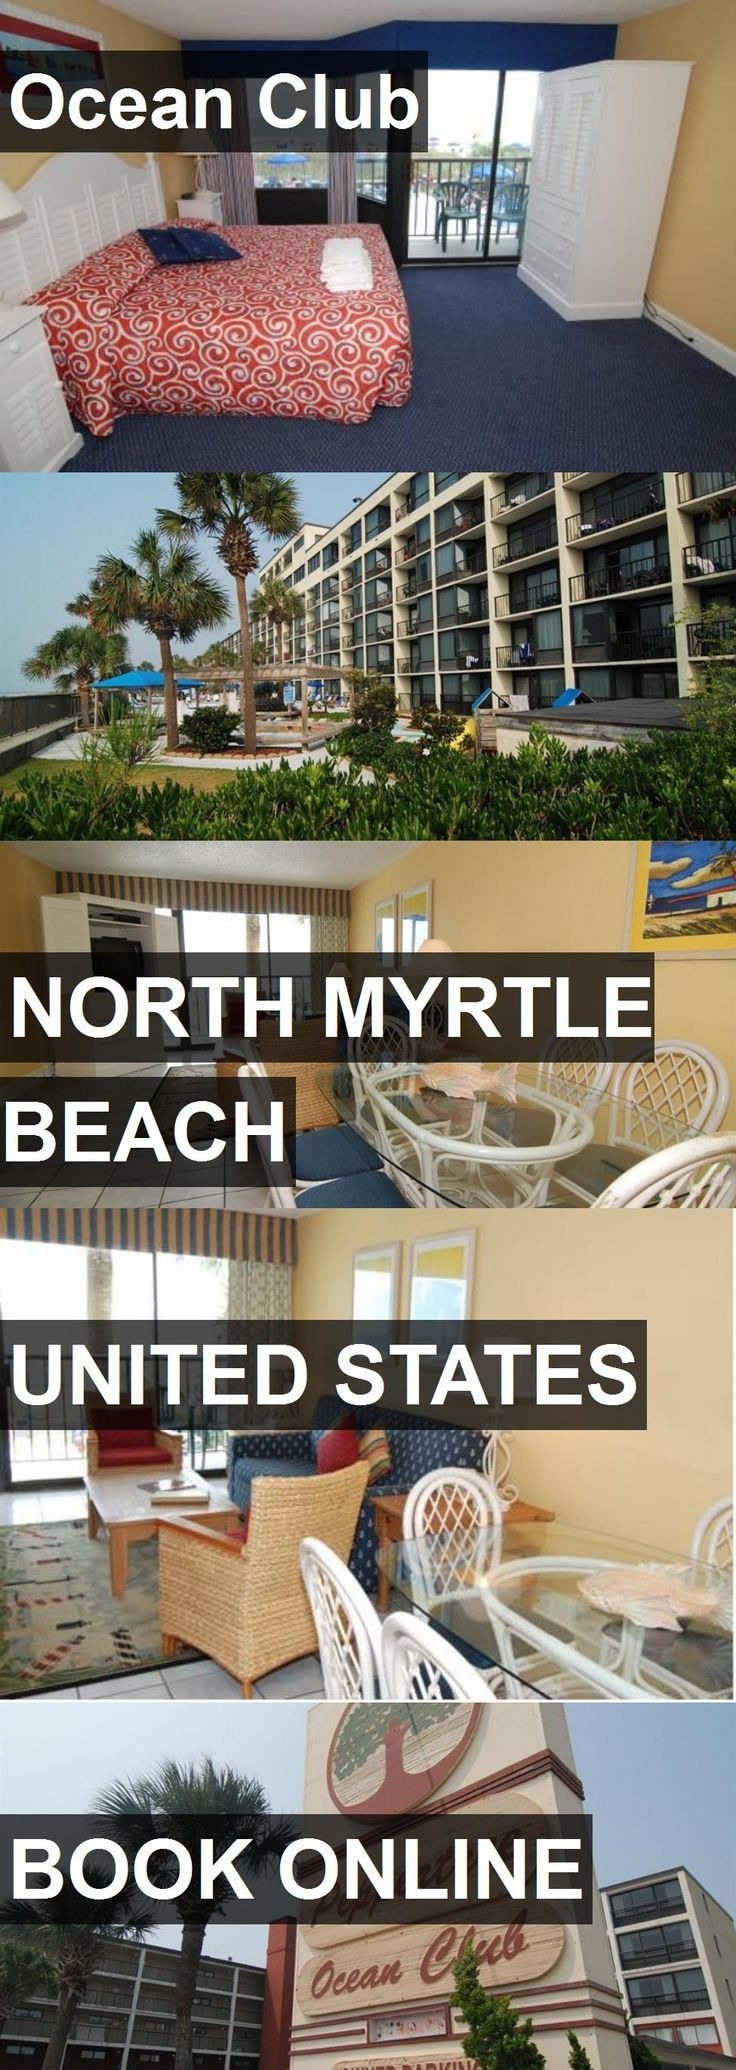 Hotel Ocean Club in North Myrtle Beach, United States. For more information, photos, reviews and best prices please follow the link. #UnitedStates #NorthMyrtleBeach #travel #vacation #hotel